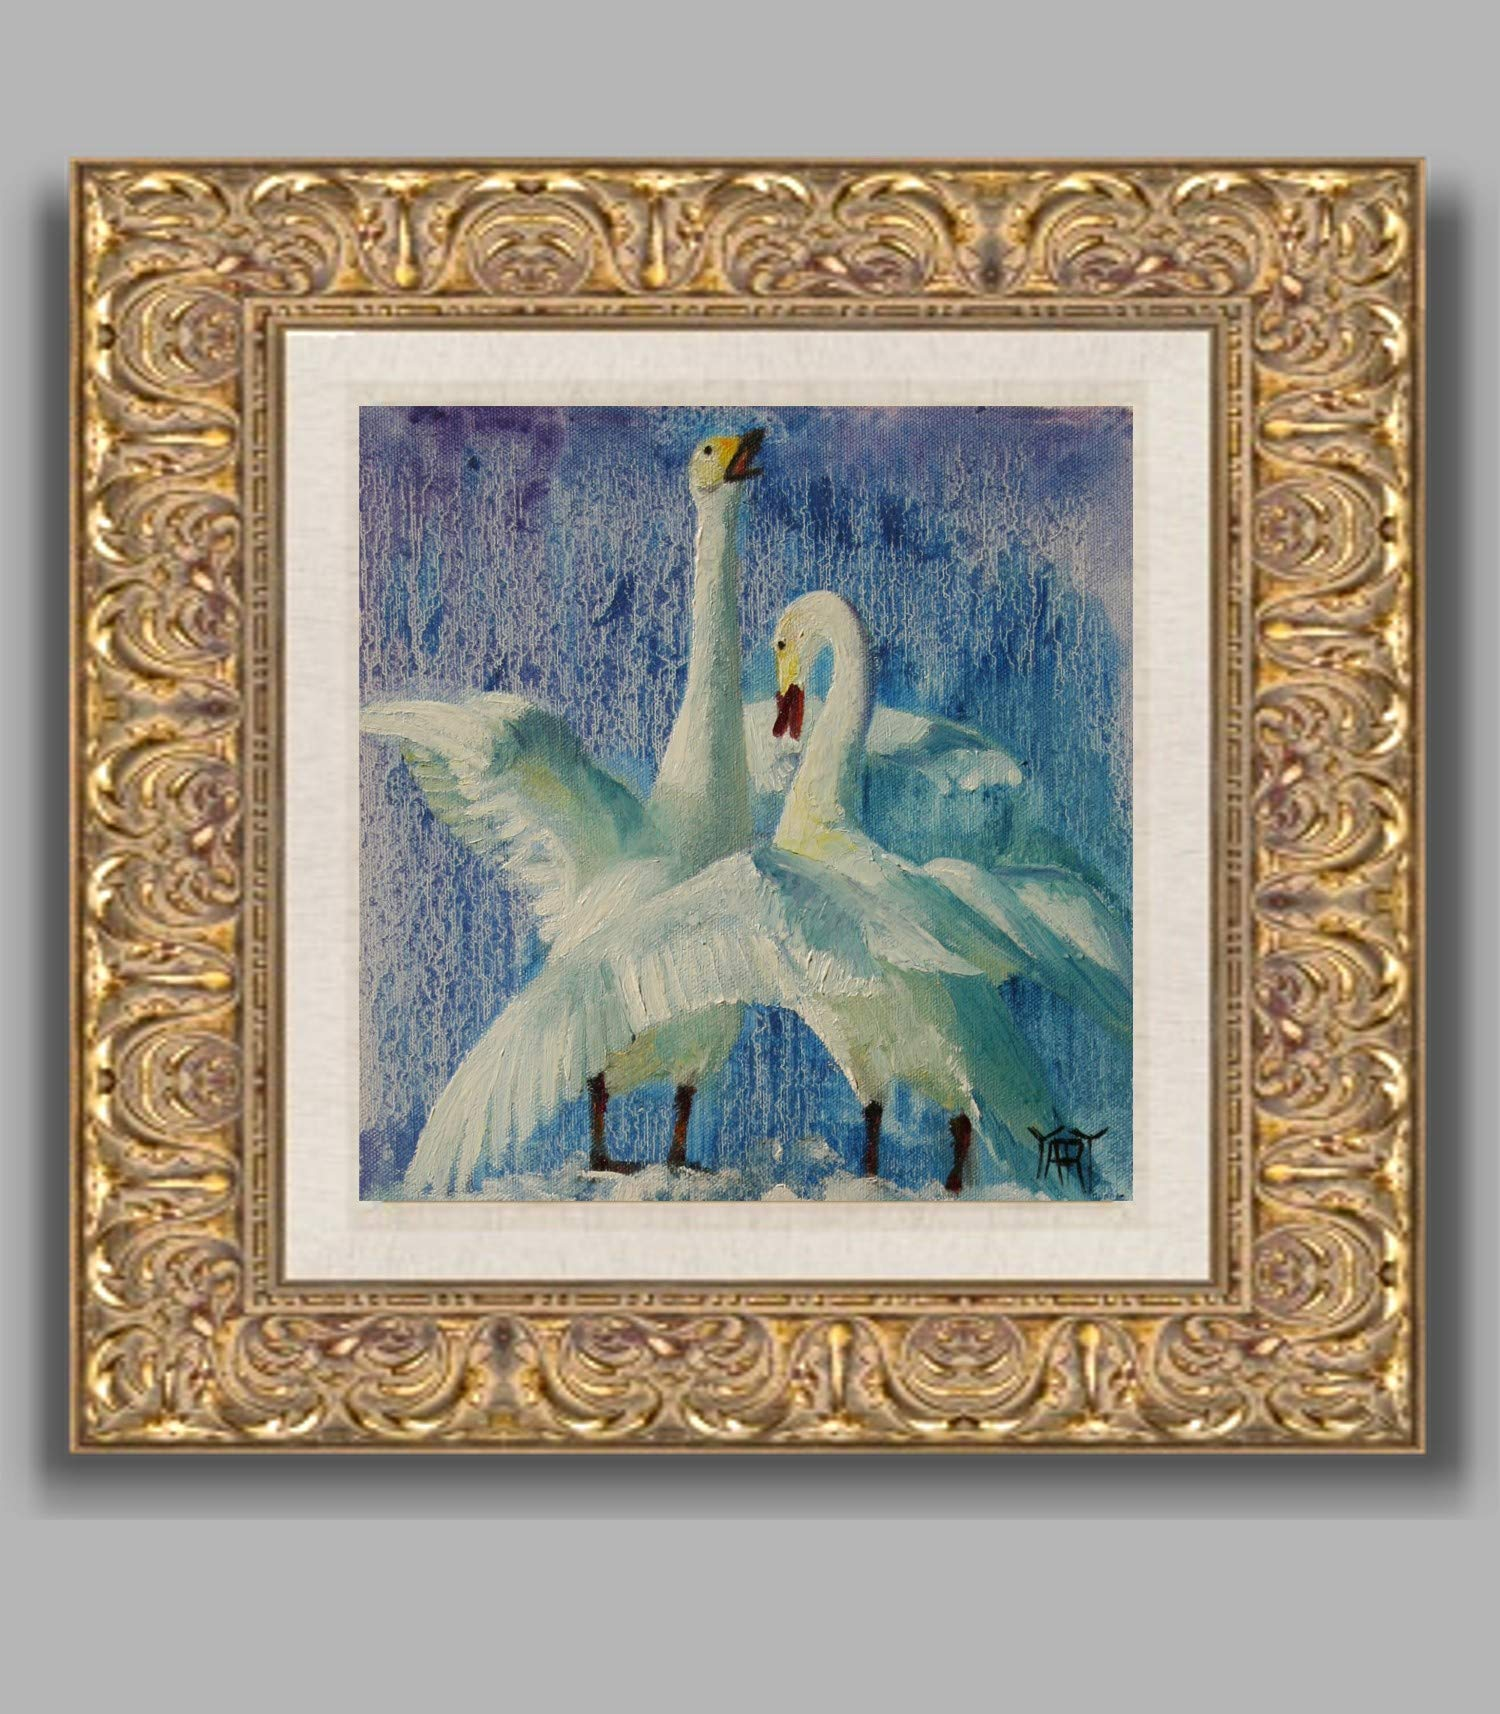 Tundra Swans NEW YEAR SPECIAL small wildlife nature work by internationally renown painter Yary Dluhos